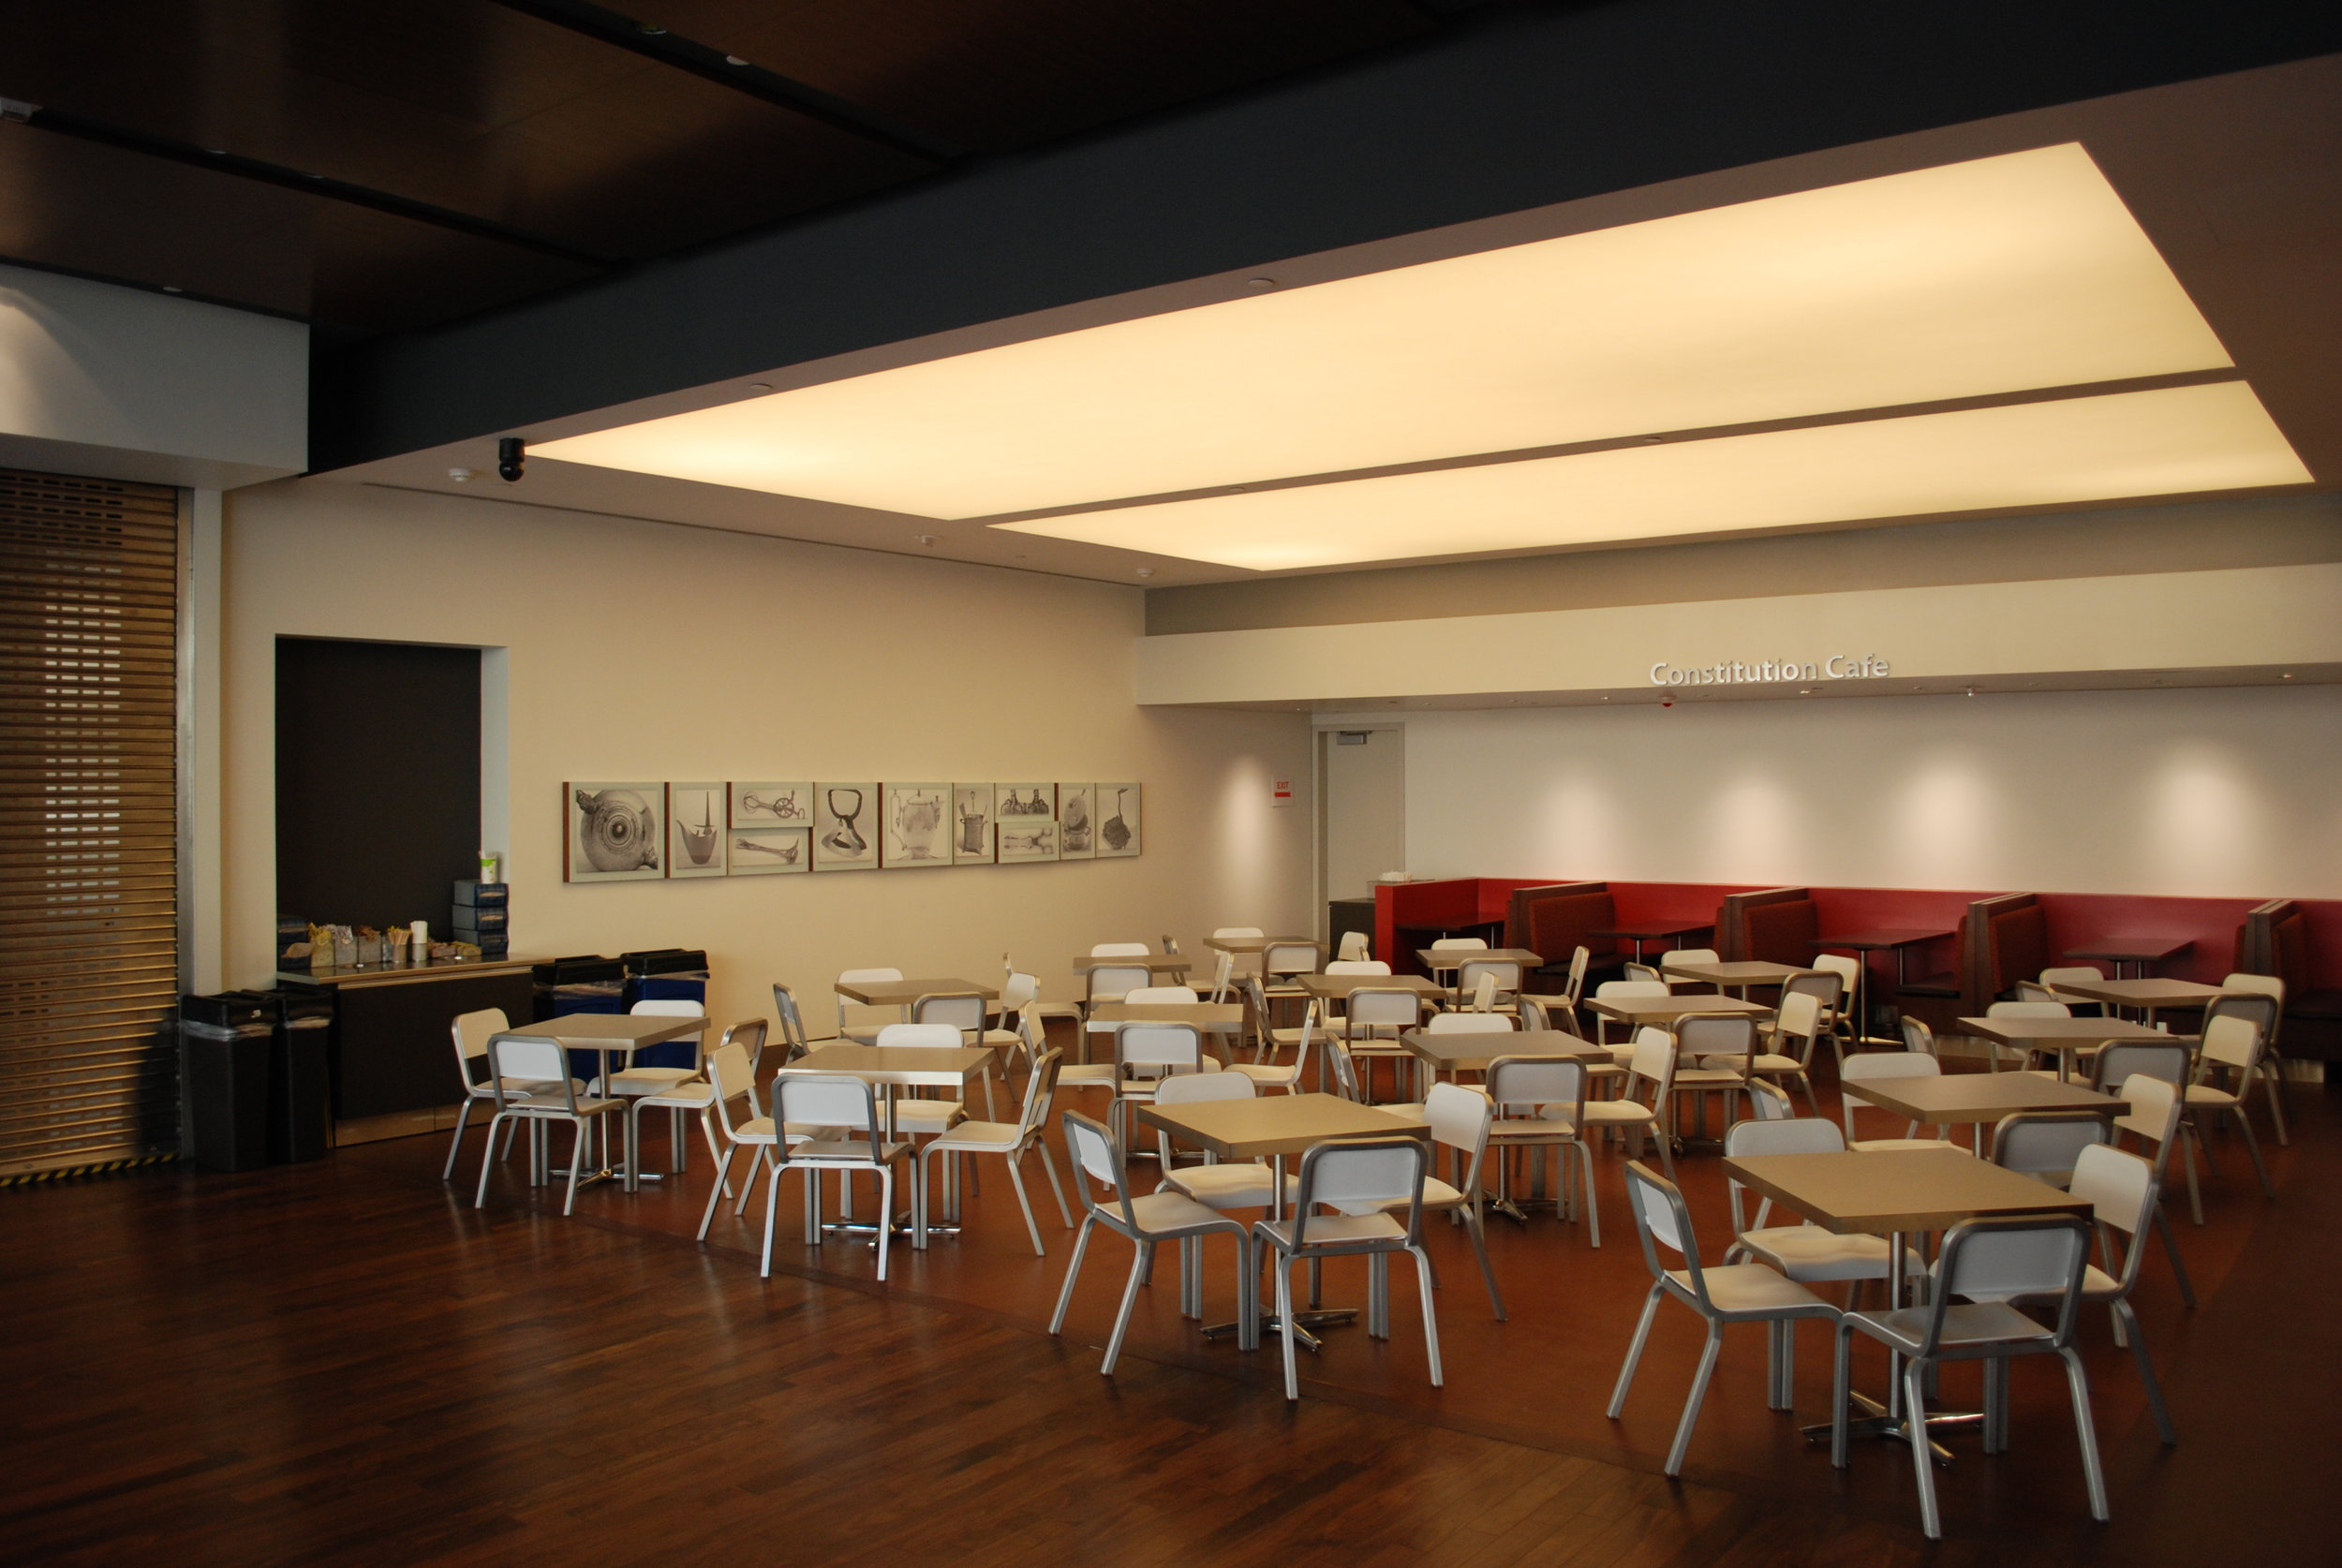 National Museum of American History - Constitution Cafe Renovation